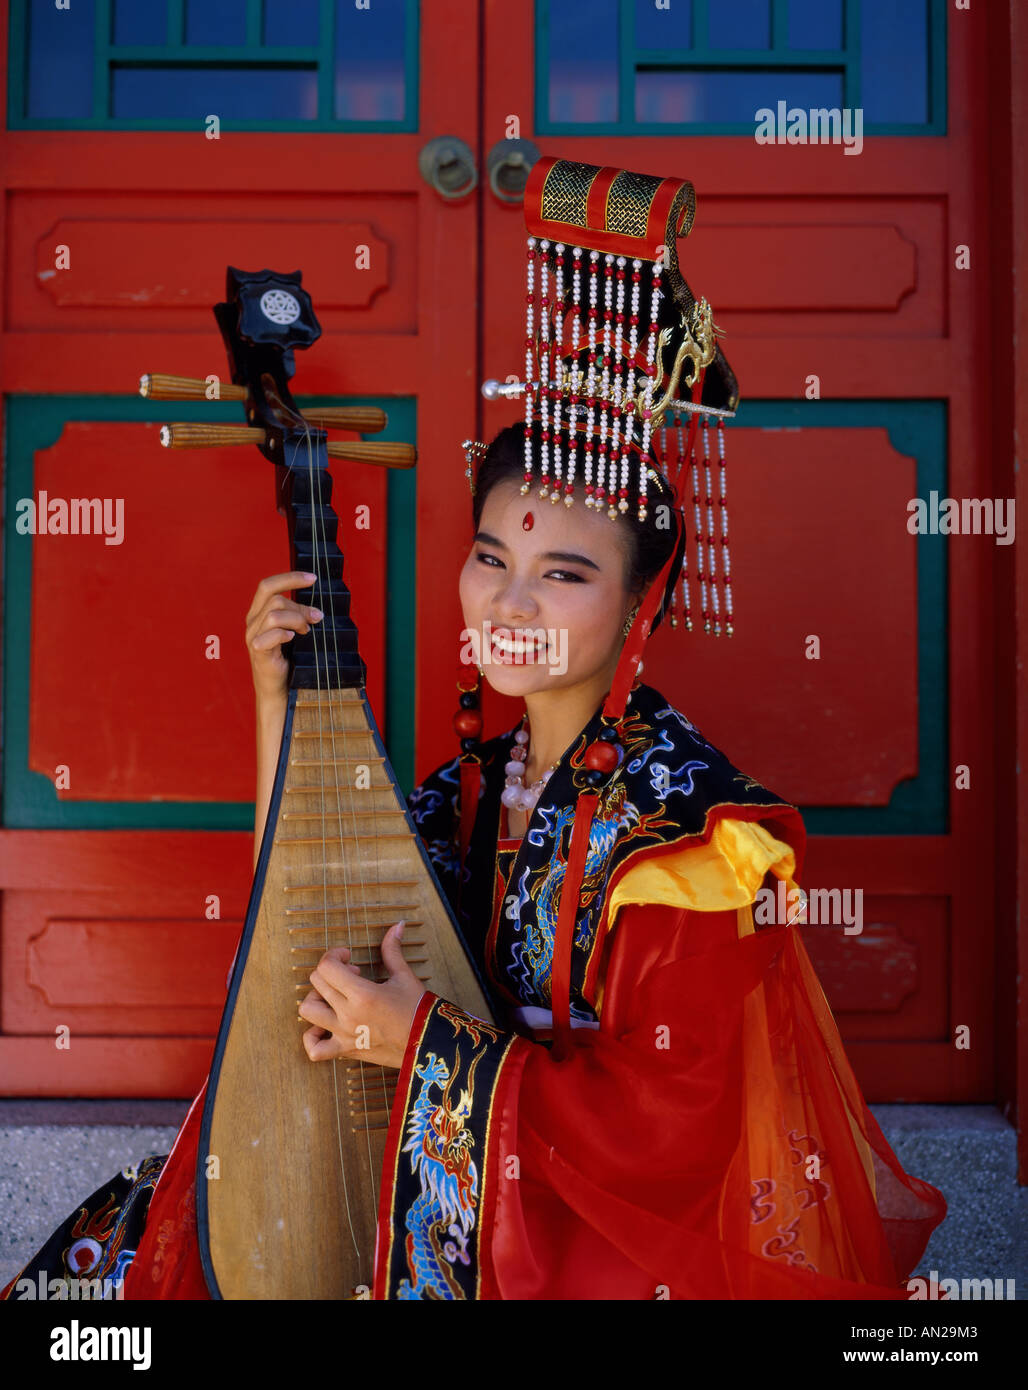 Women Dressed in Traditional Costume Playing Three String Lute, Beijing, China - Stock Image